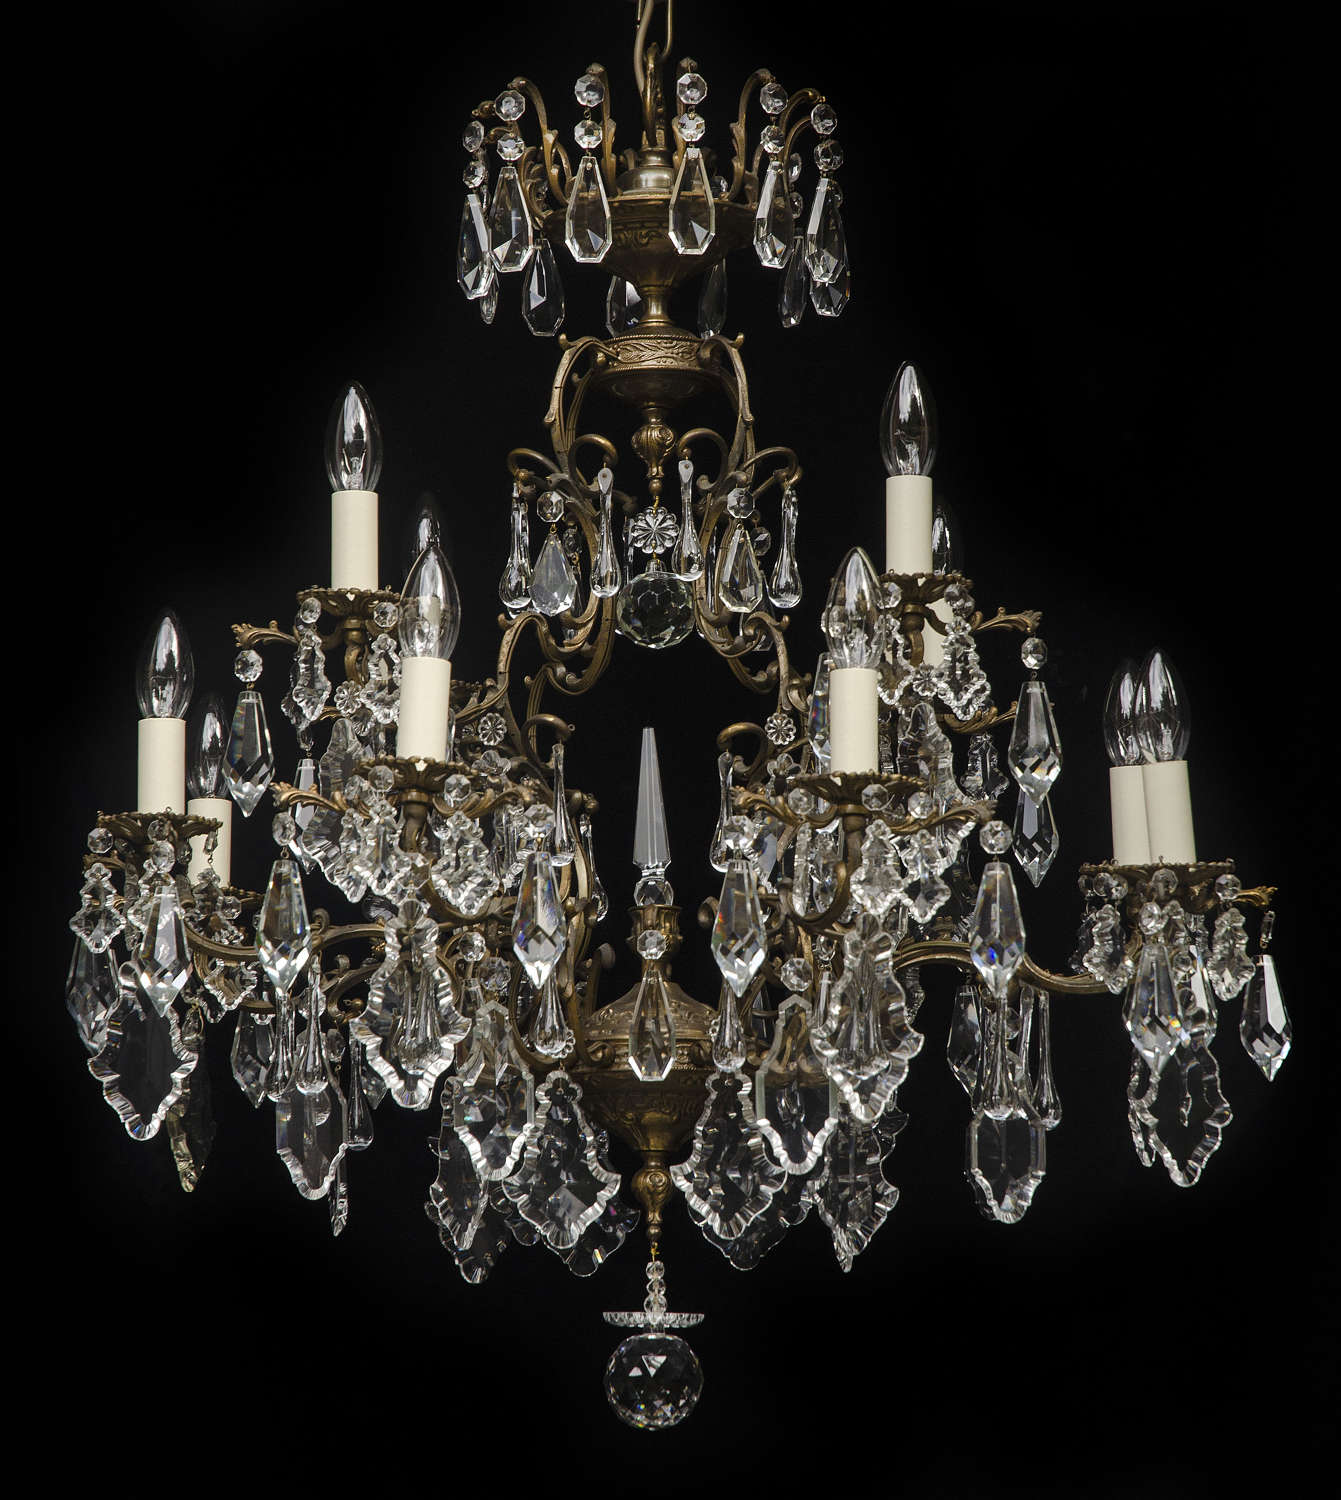 Large 2 tiered, 12 light, Italian Antique Chandelier